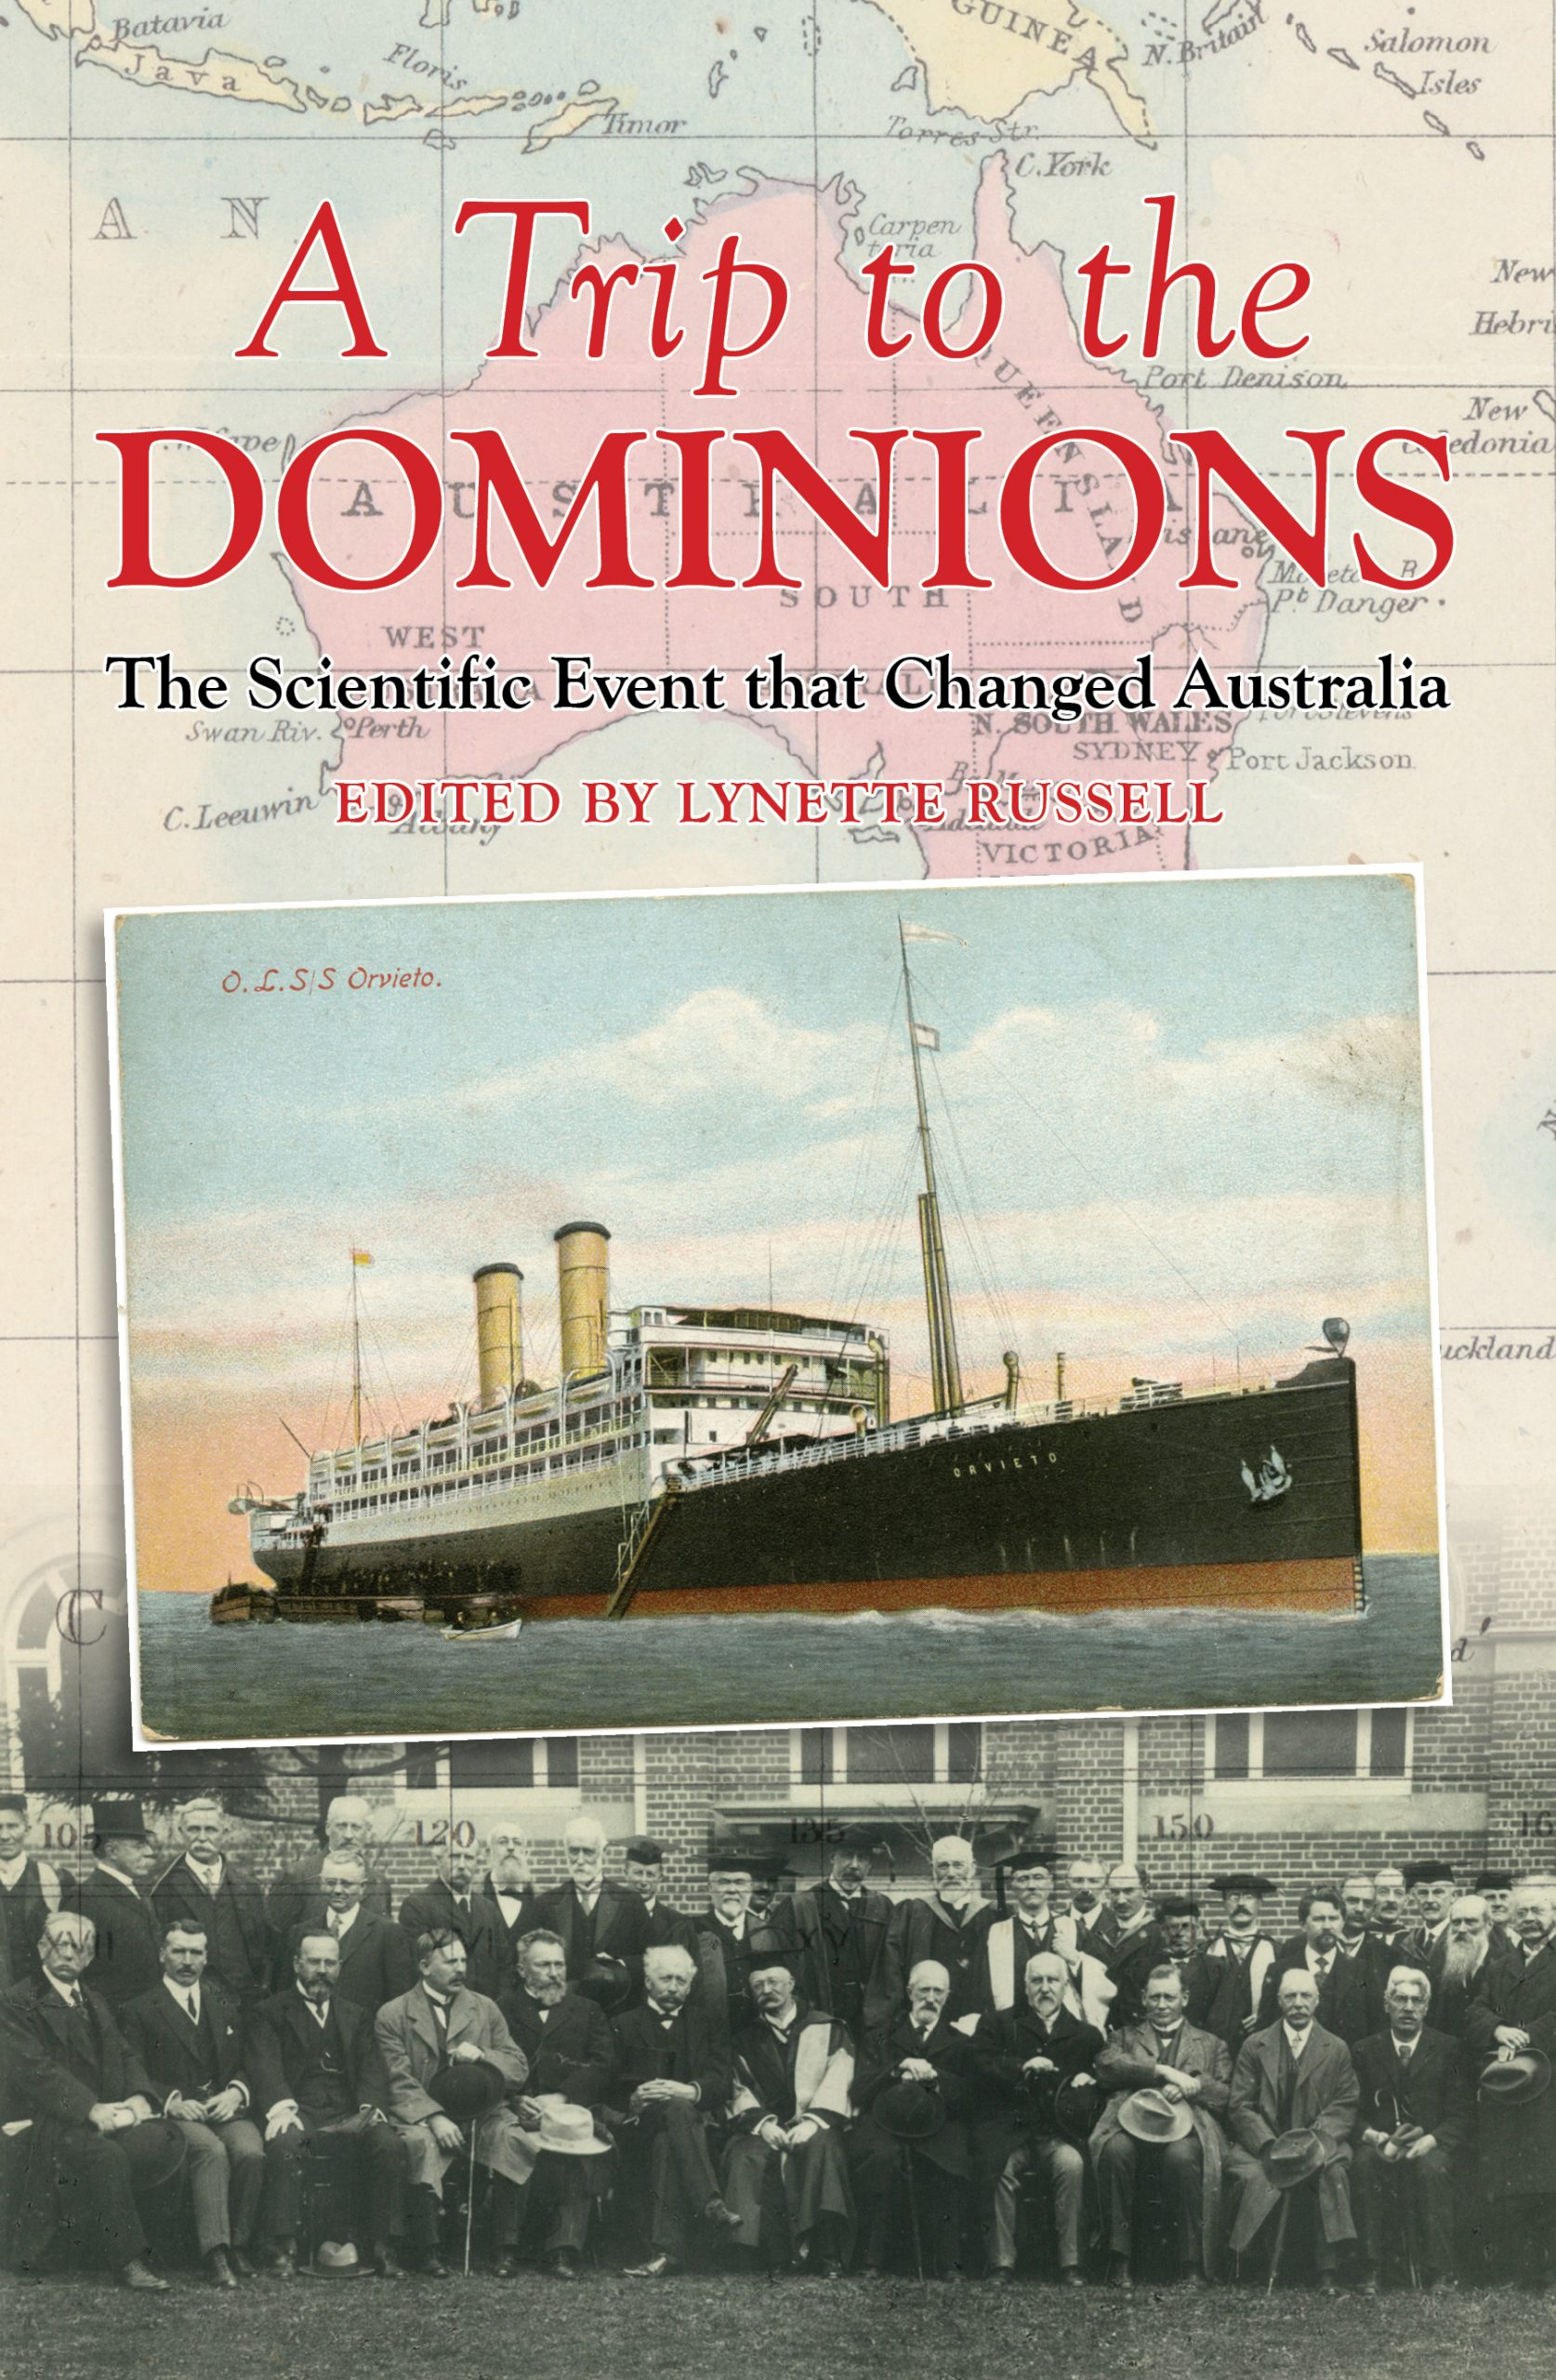 A Trip to the Dominions: The Scientific Event that Changed Australia